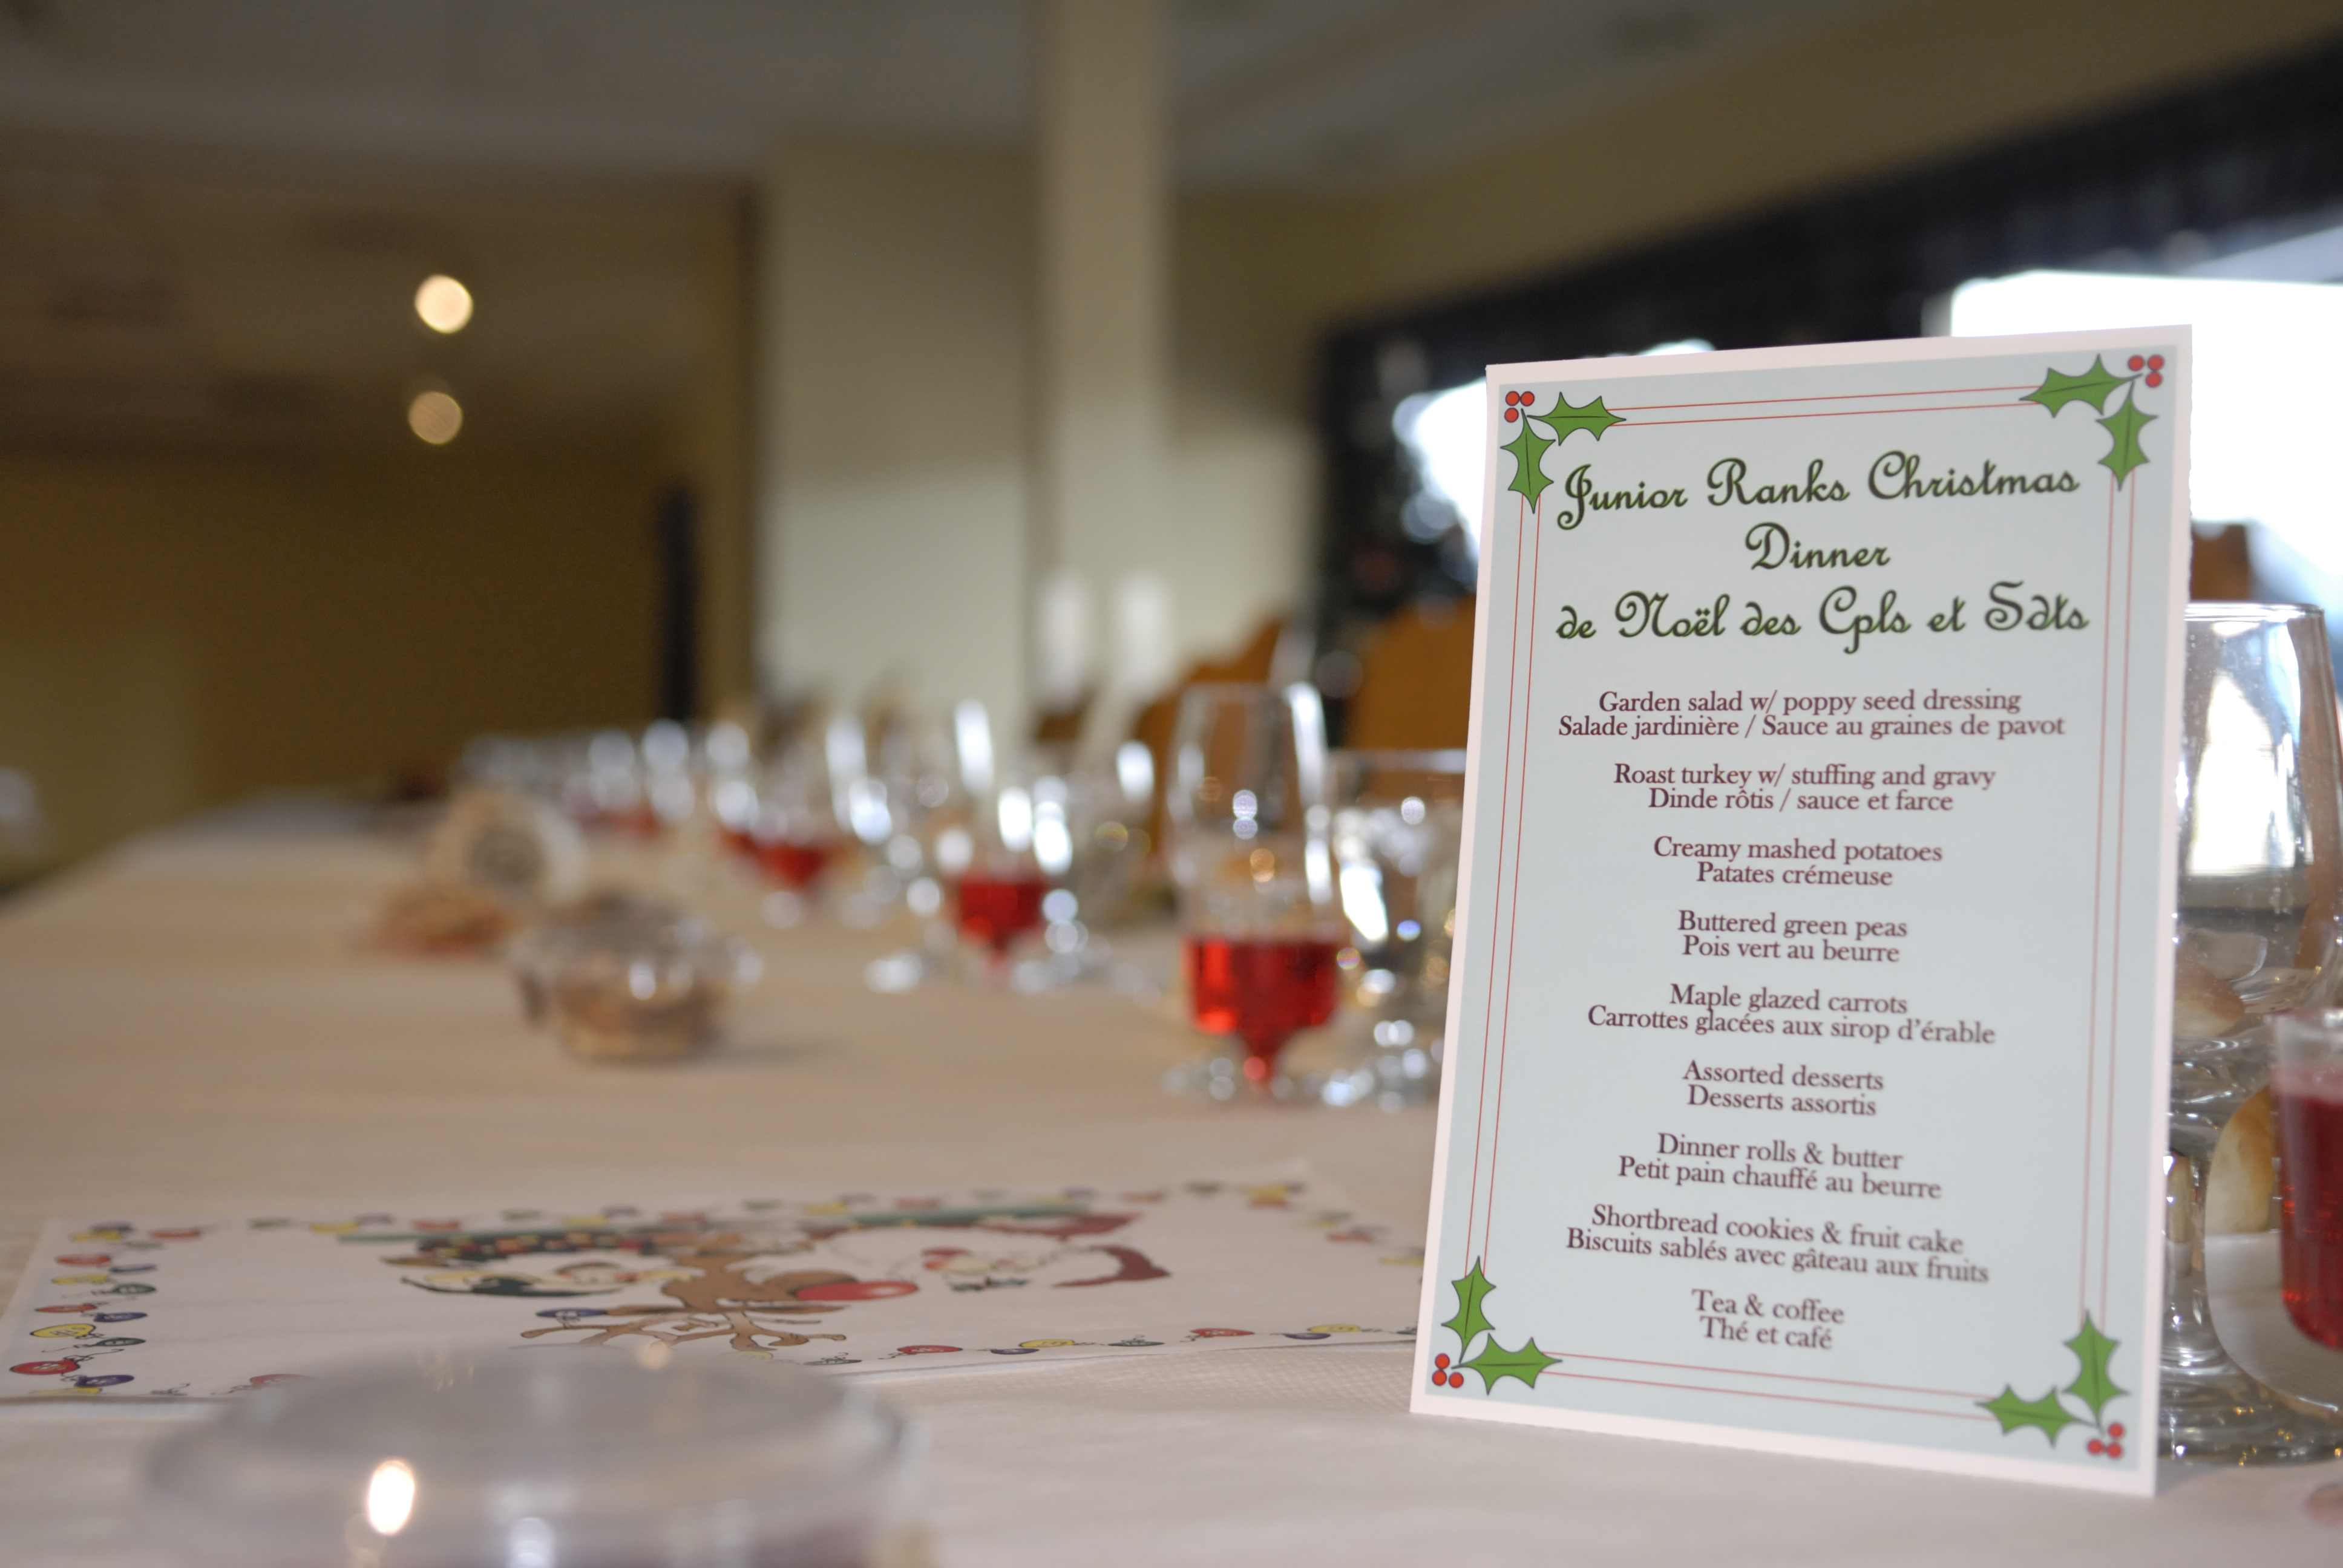 The menu for the Junior Ranks Christmas Dinner at 14 Wing Greenwood, Nova Scotia, held on December 5, 2014. The Junior Ranks Christmas Dinner is an annual event during which the officers and senior non-commissioned members serve a meal to the junior non-commissioned members as a way of thanking them for their hard work throughout the previous year. PHOTO: Sergeant Ken Fenner, GD2014-0773